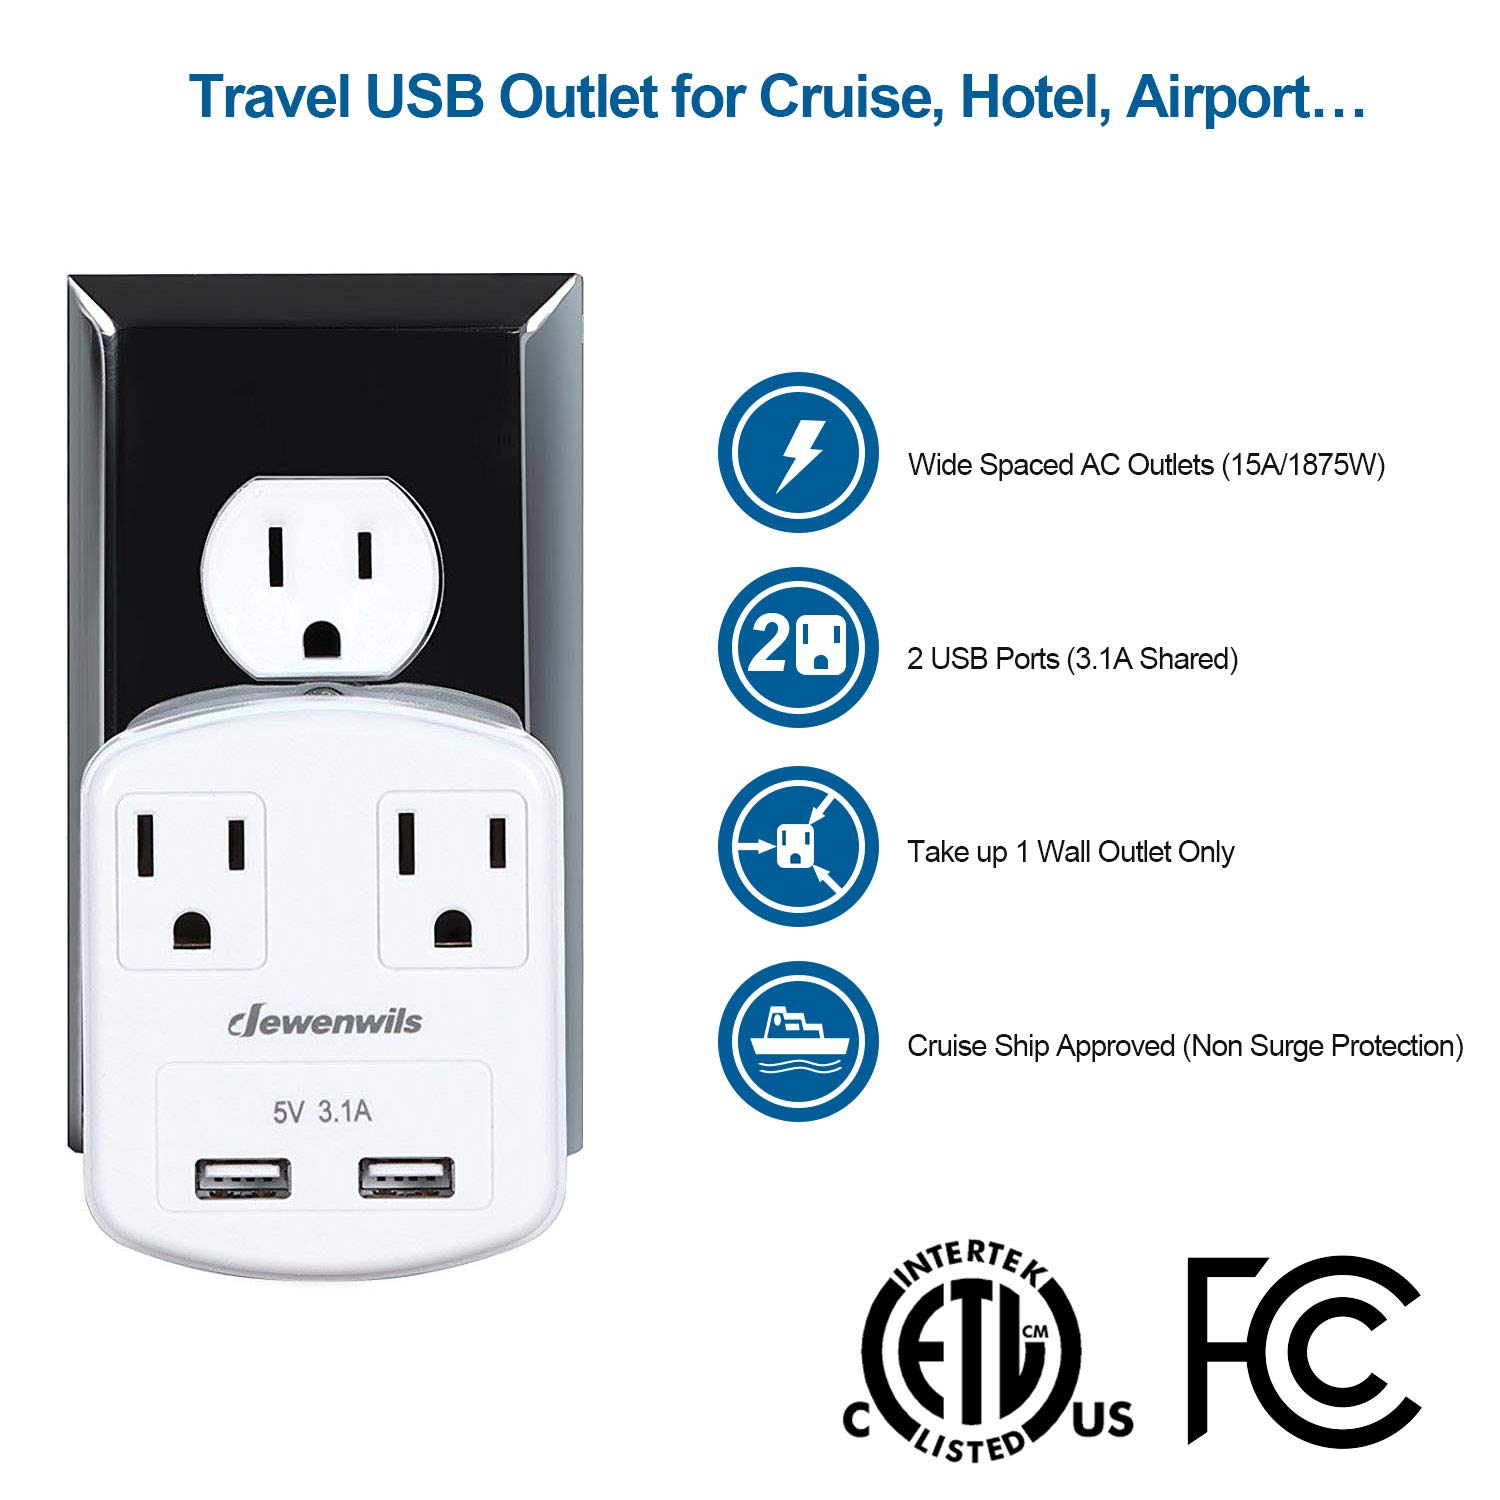 Dewenwils Multi Outlet Plug with 2 USB Ports (3.1A Total), Small Power Strip USB Charger for Cruise Ship/Hotel / Dormitory, Compatible with GFCI, ETL Listed, White by DEWENWILS (Image #2)